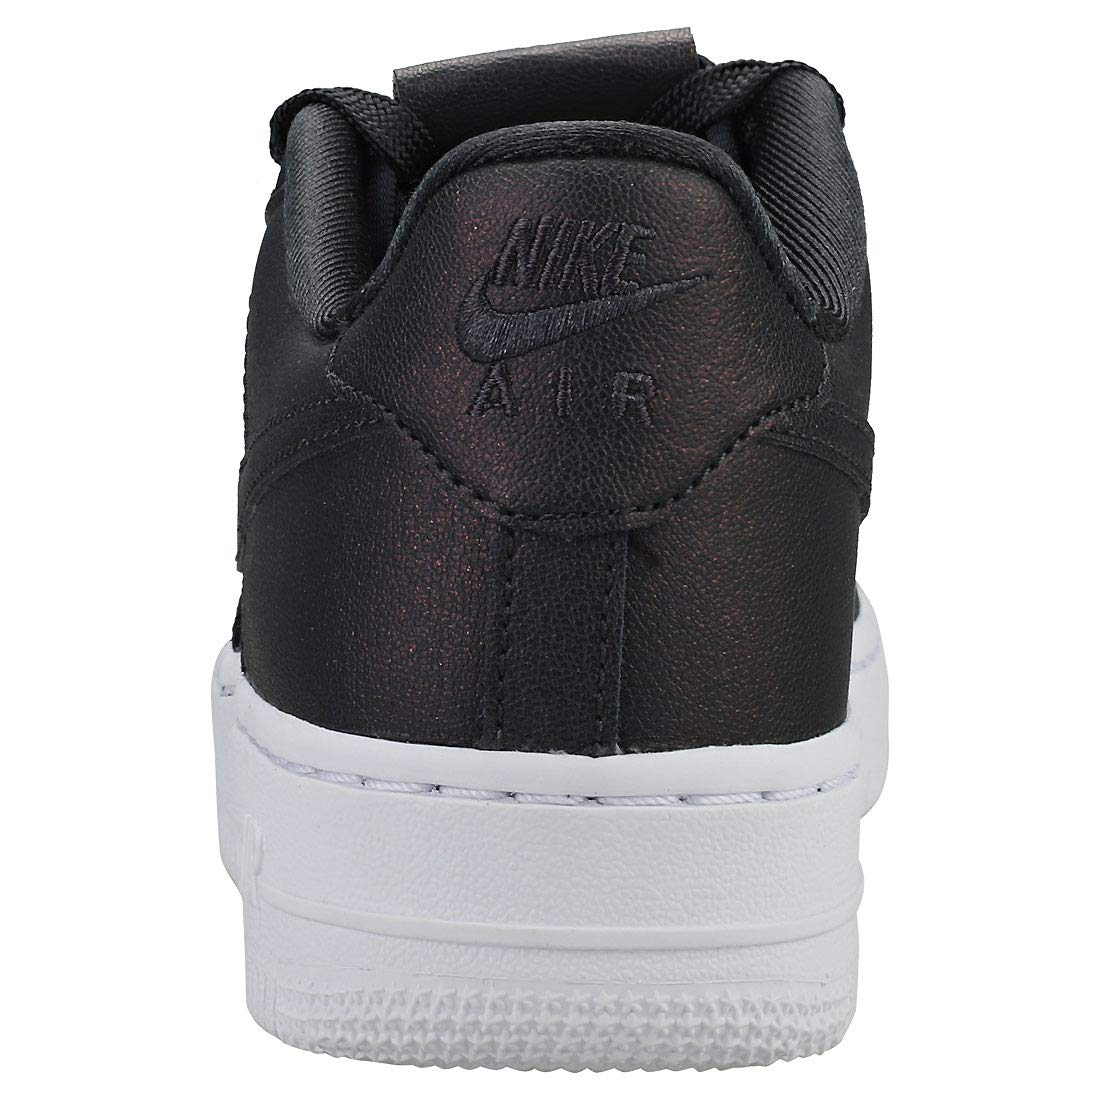 pretty nice 3cf4b c5c50 Nike Air Force 1 SS (GS), Chaussures de Fitness Femme  Amazon.fr   Chaussures et Sacs